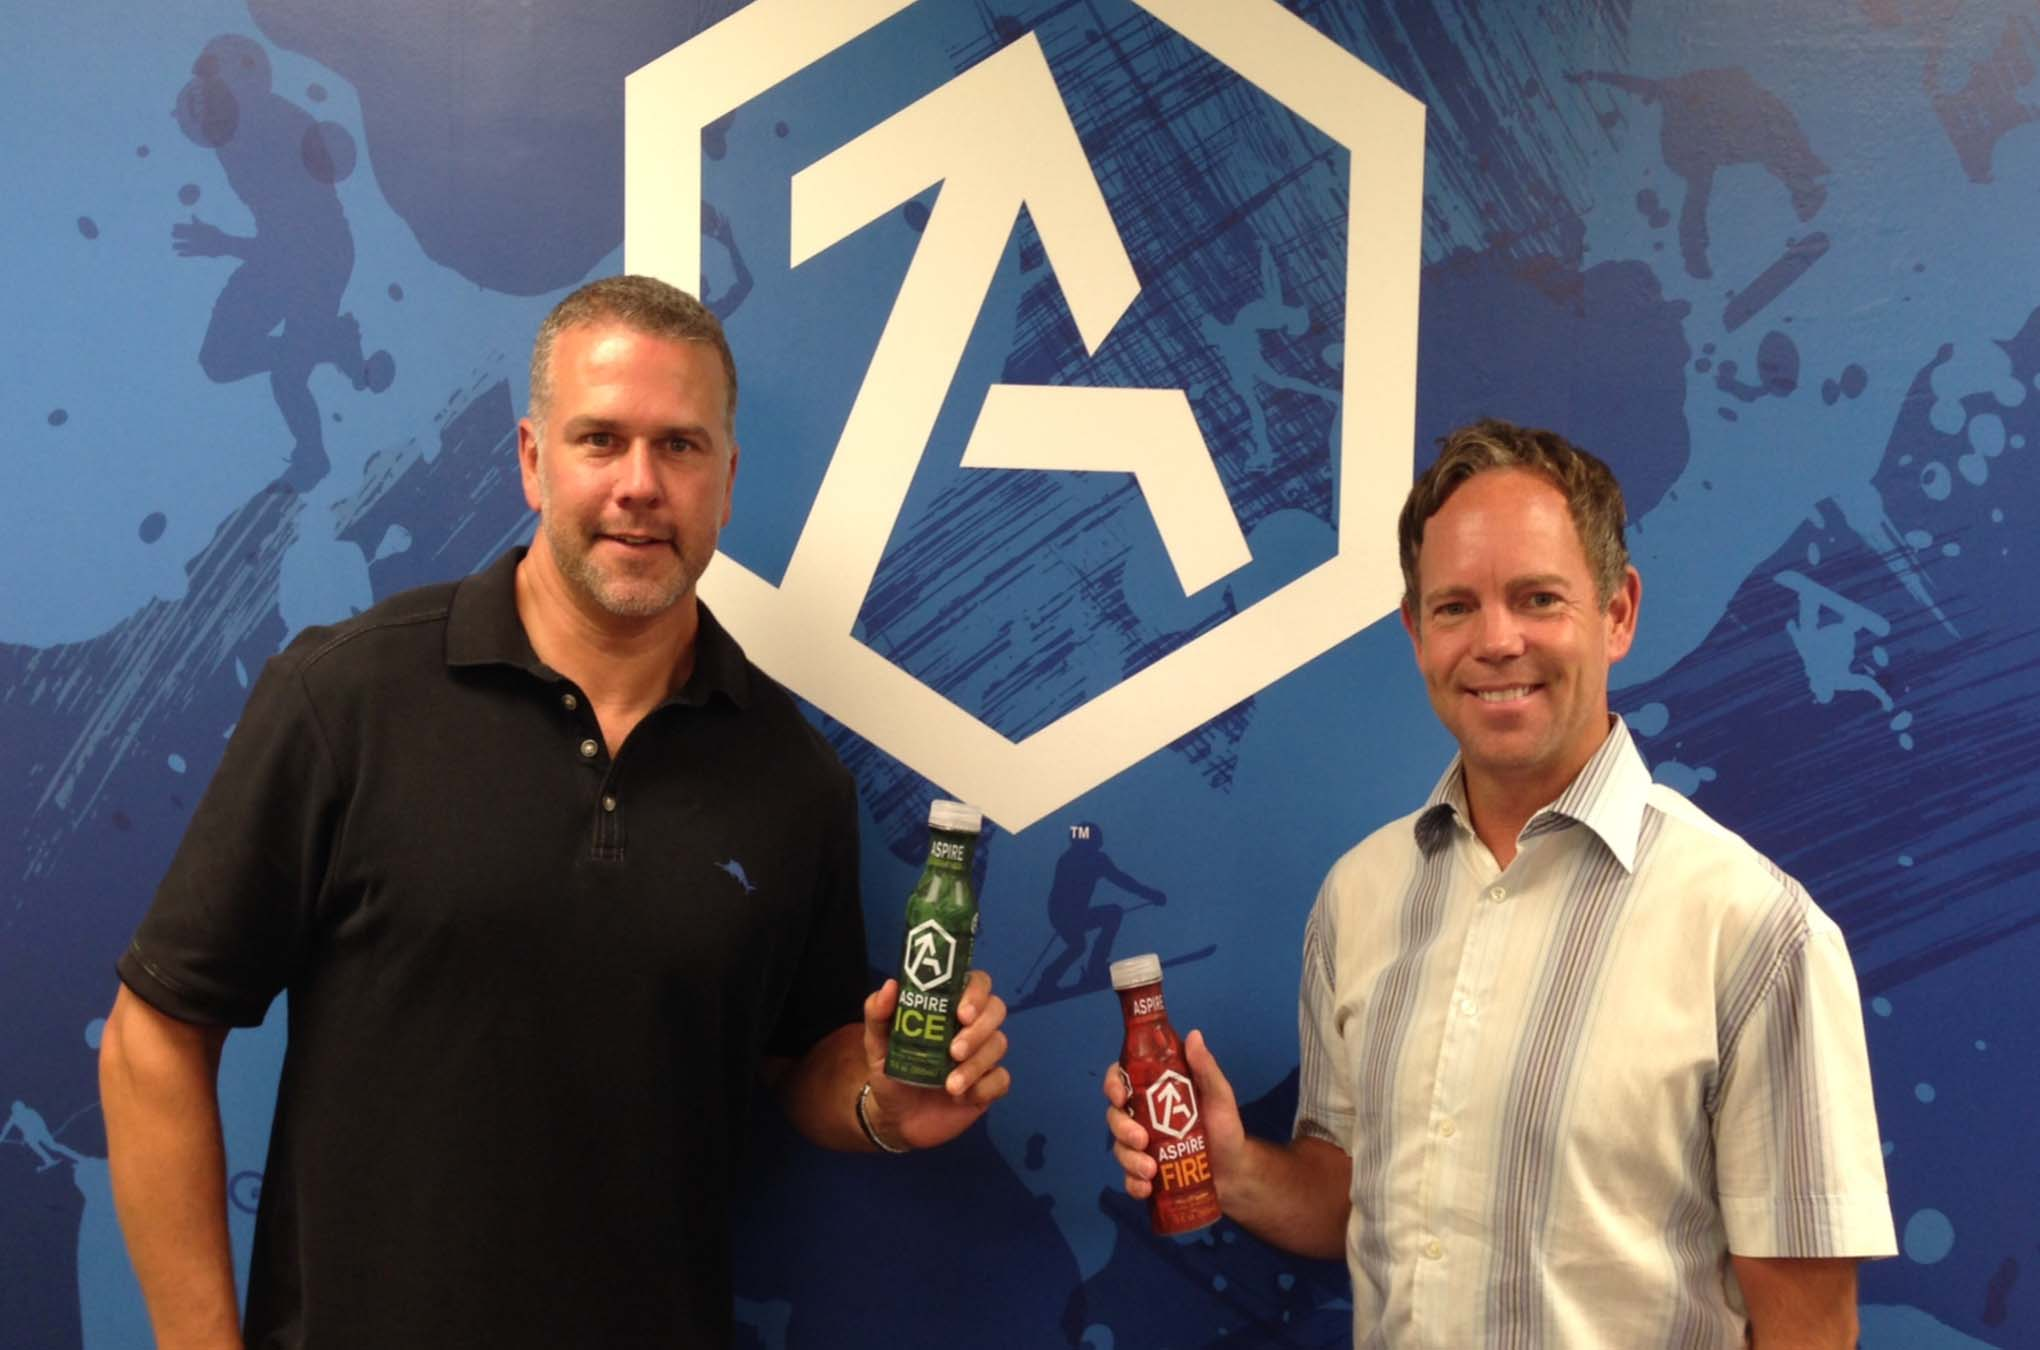 Founded in 2012 by two Minnesota hockey dads that were concerned about the prevalence of sugary, caloric drinks being consumed in the name of sports, ASPIRE Beverage Company makes innovative sports drinks with less sugar and calories that are designed to improve the health and performance of athletes.